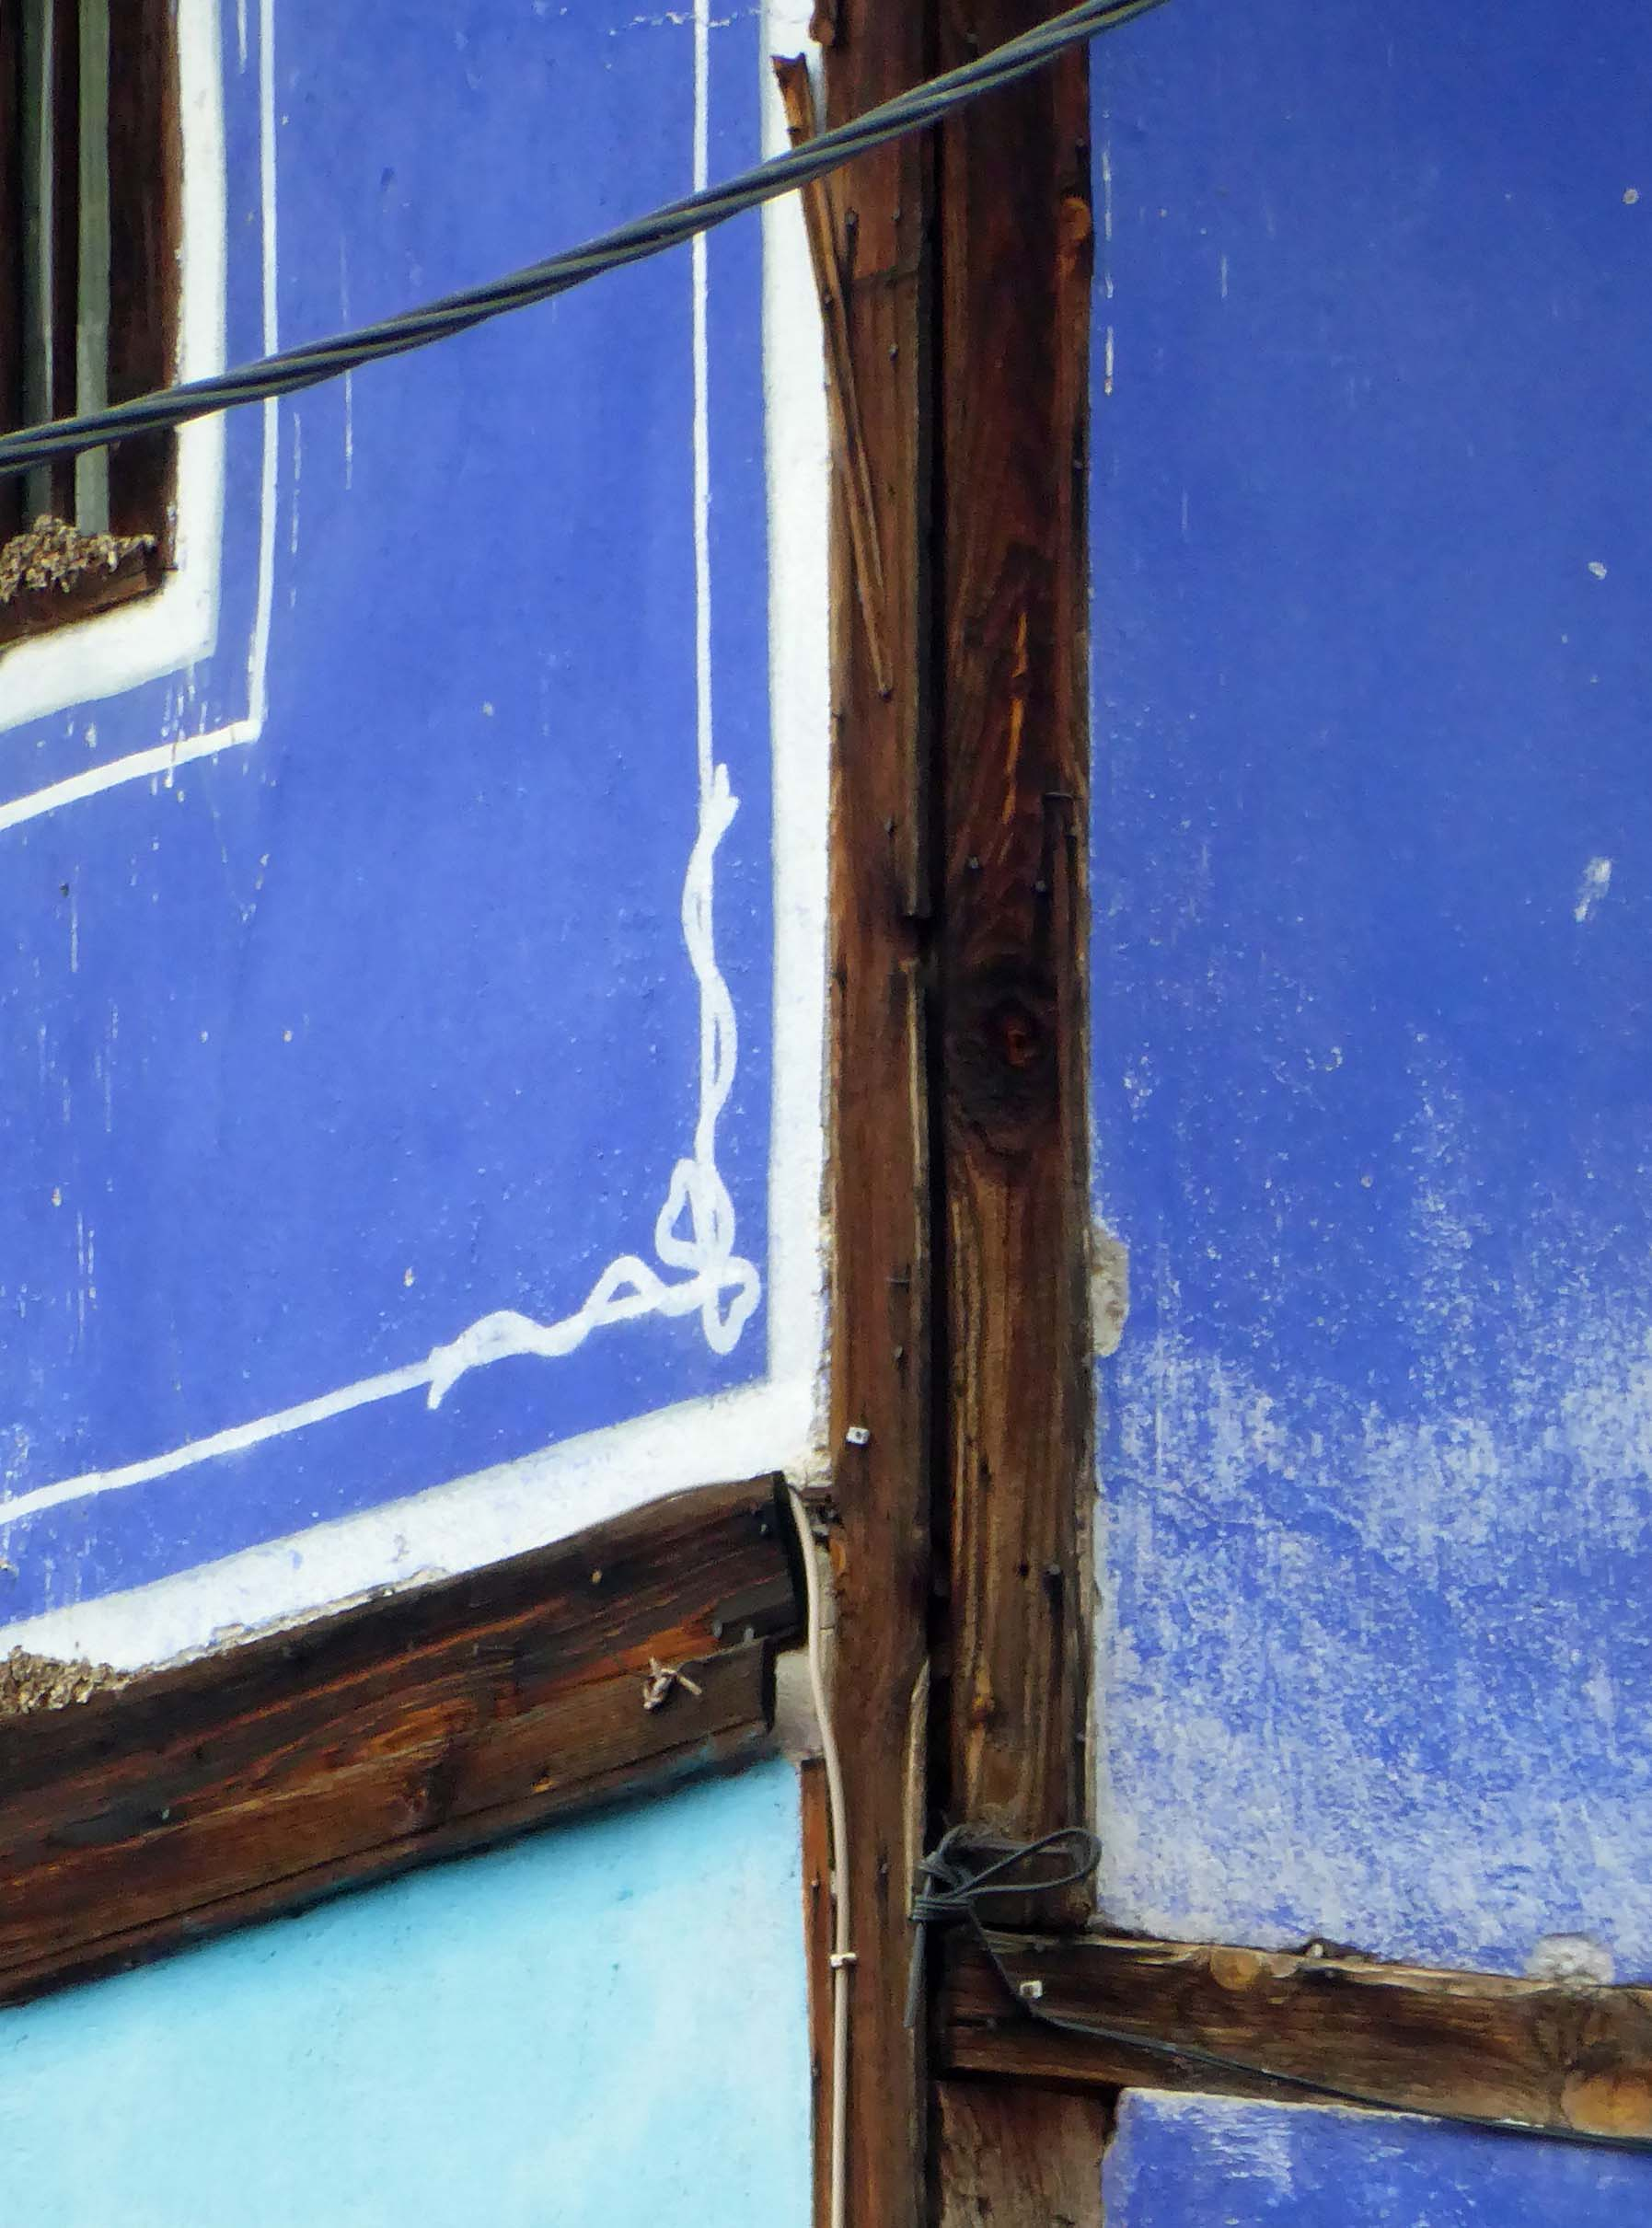 Timbered house painted blue